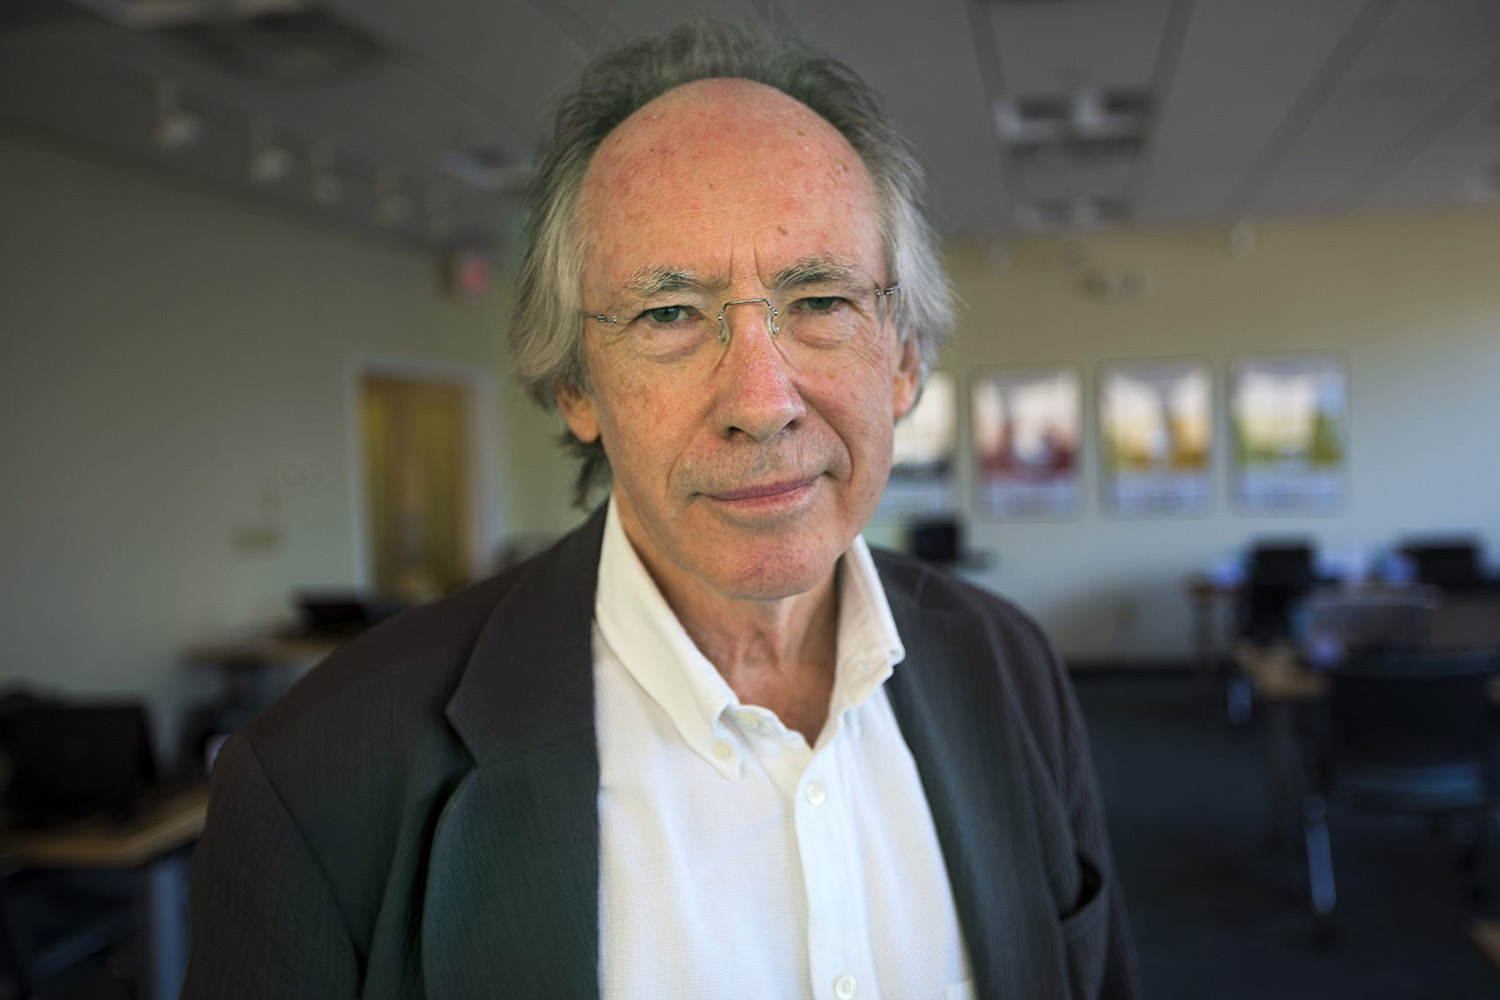 Novelist and author Ian McEwan, pictured in the WBUR offices on Wednesday, September 21, 2016. (Jesse Costa/WBUR)